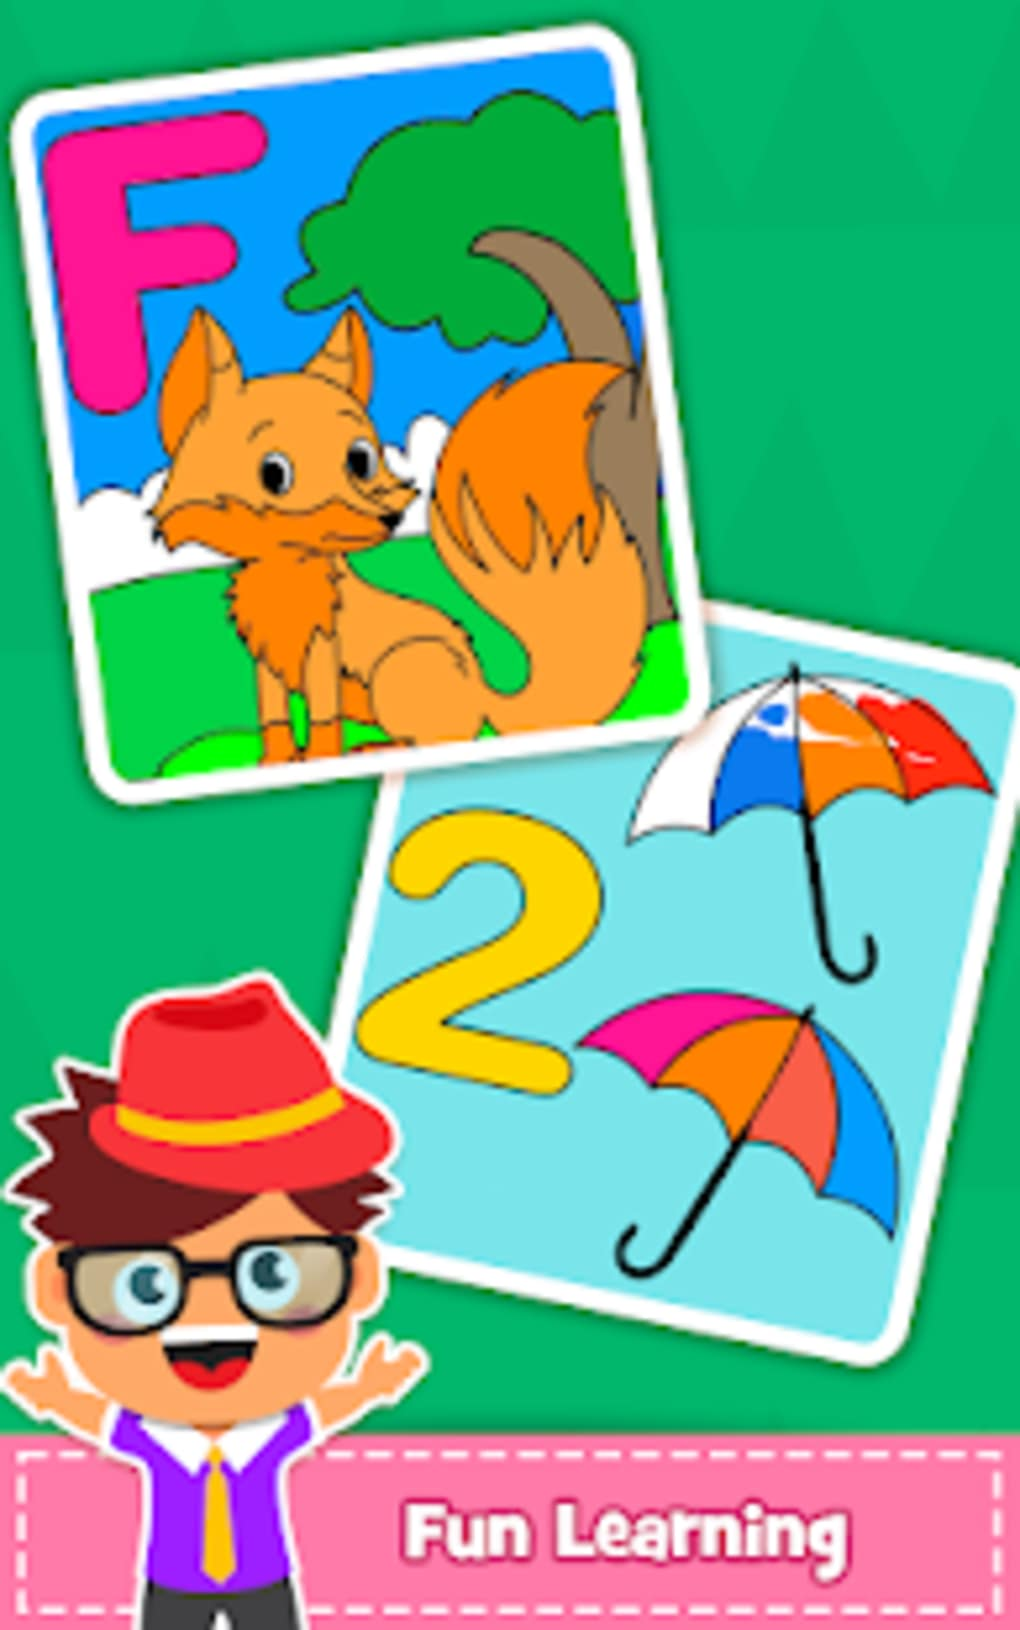 Coloring Games PreSchool Coloring Book for kids for Android - Download